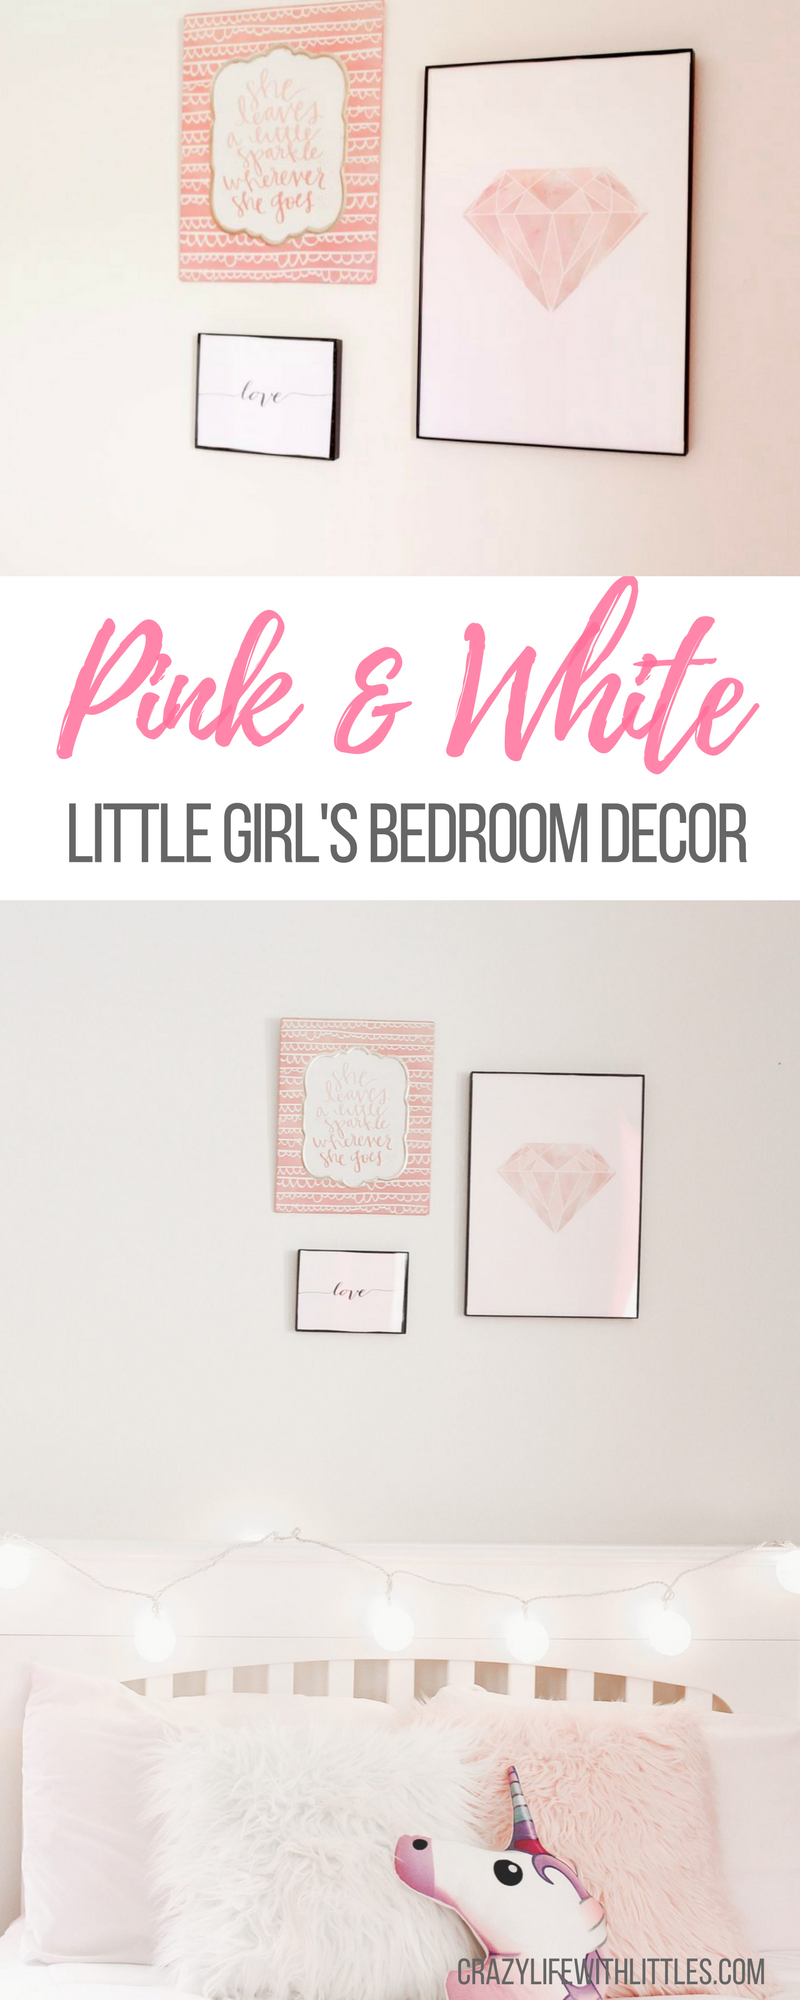 pink bedroom decorating ideas hot pink and black bedroom ideas pink room ideas for toddlers pink and grey girl bedding pink bedroom designs for small rooms pink bedroom ideas for adults pink girl room ideas